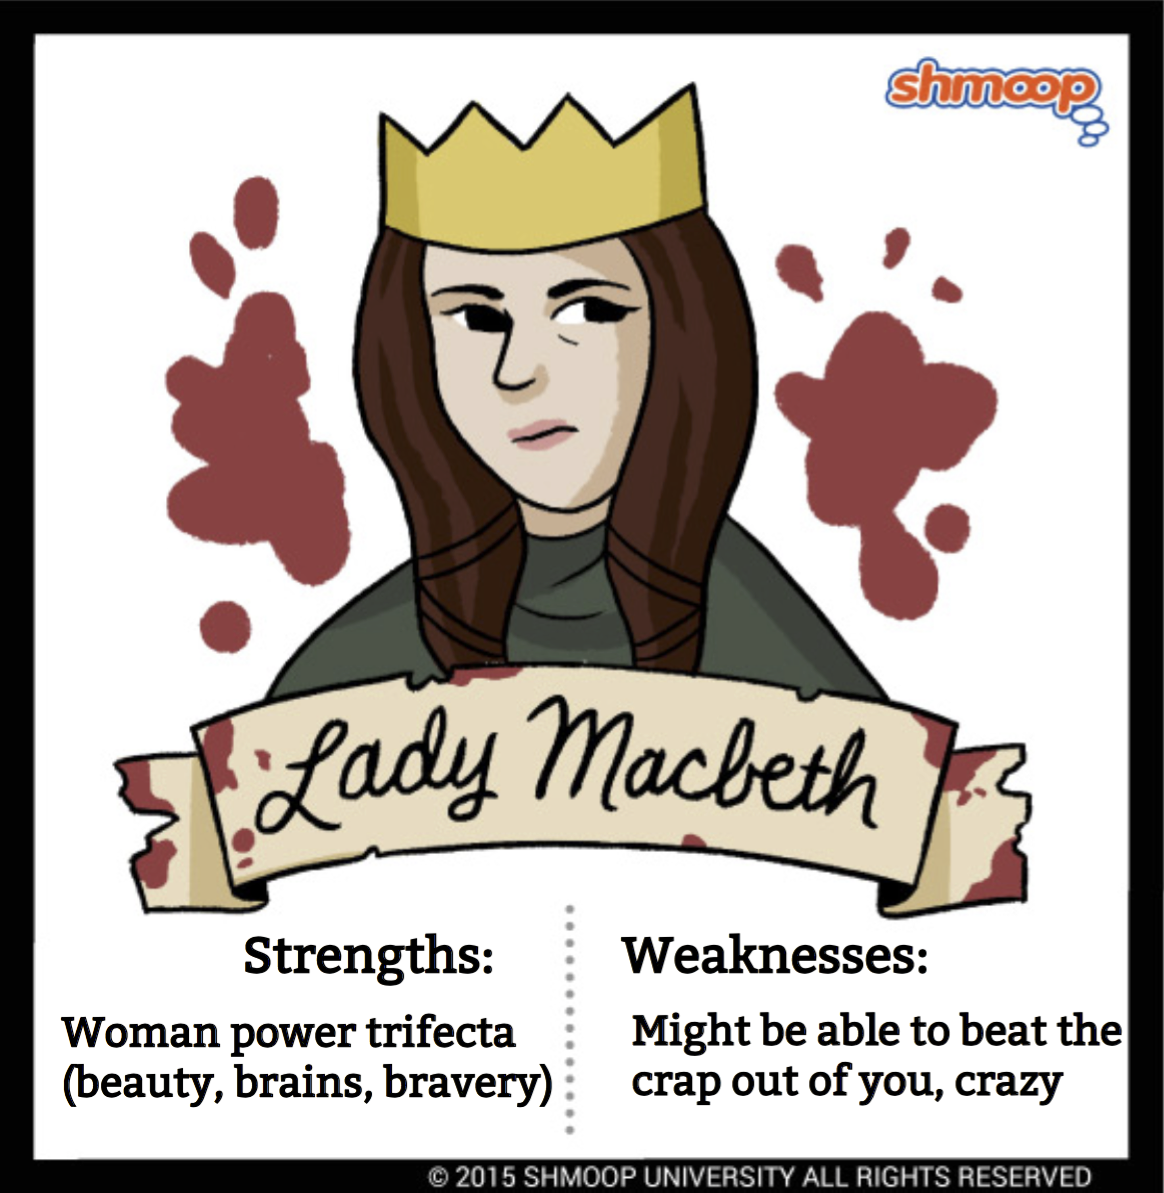 a character analysis of macbeth in macbeth Lady macbeth: she is the wife of macbeth she is more ambitious than her husband she is more ambitious than her husband she is considered to be the 4 th witch in the play, as she plays a significant role in ruining his husband.